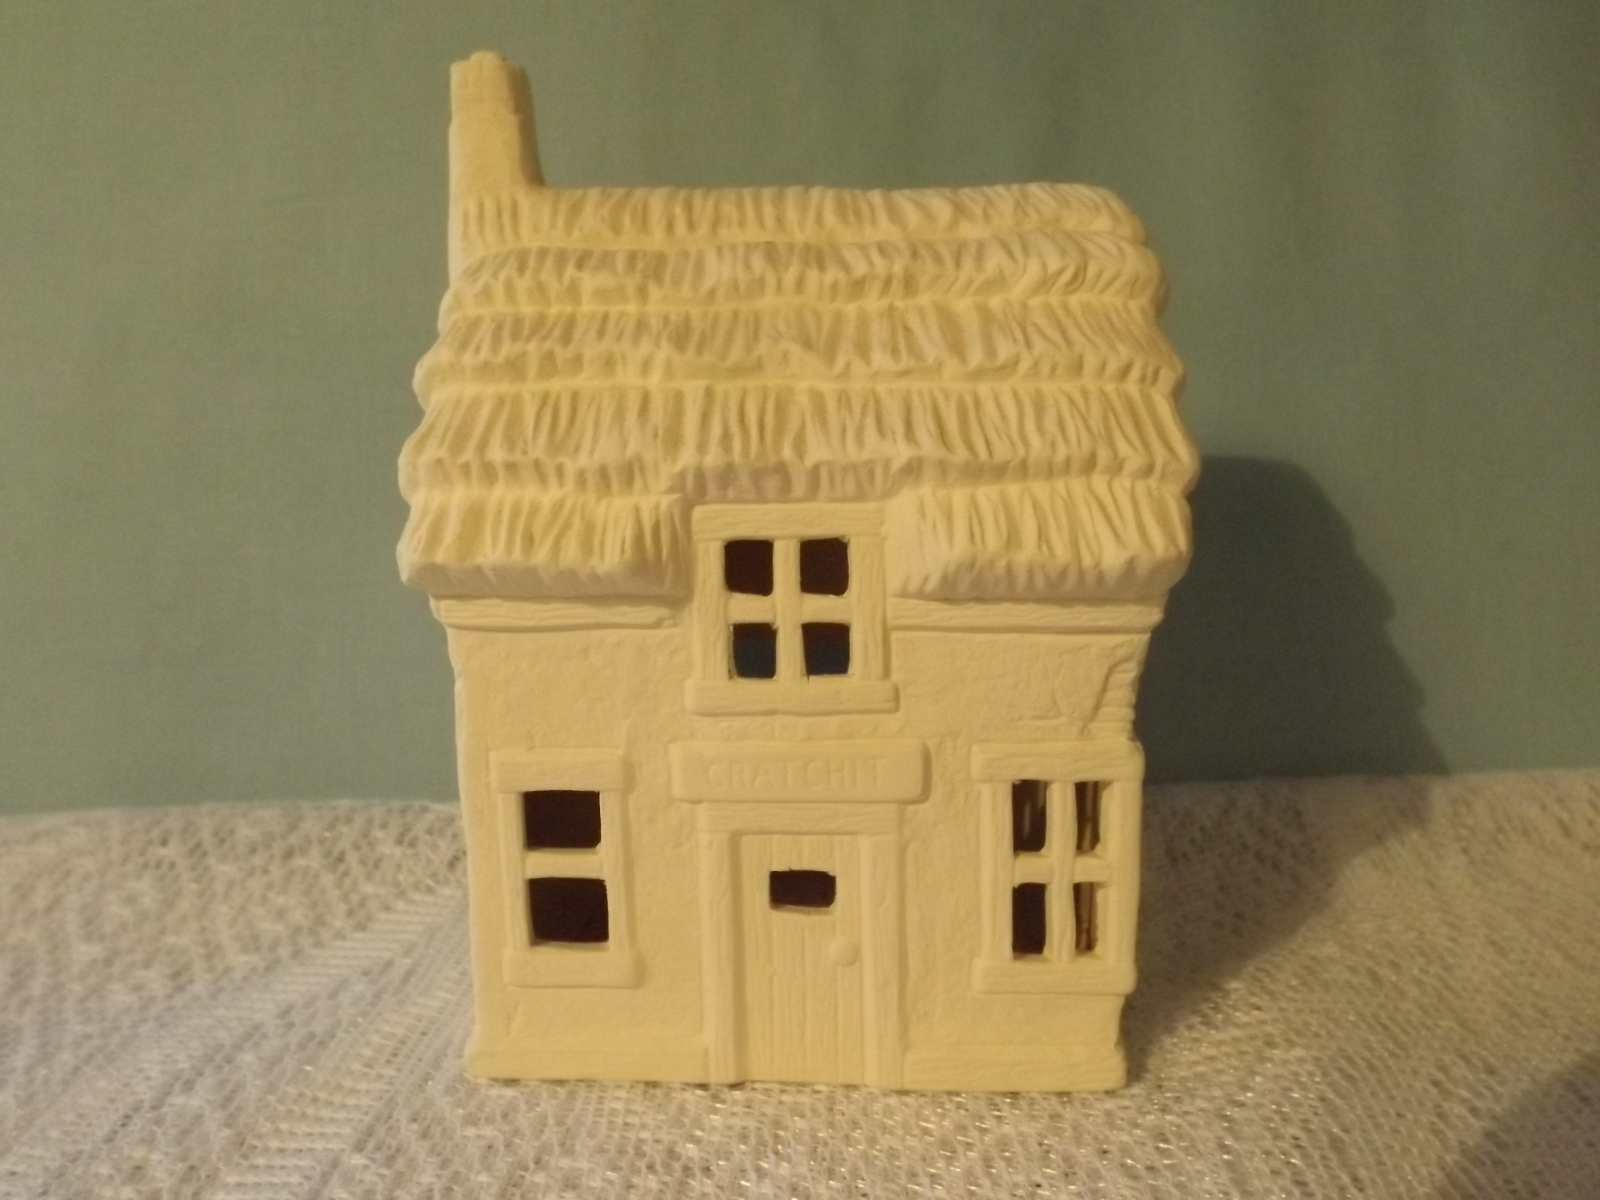 Dicken 39 s cratchit house ceramic bisque ready to paint for Ceramic house paint